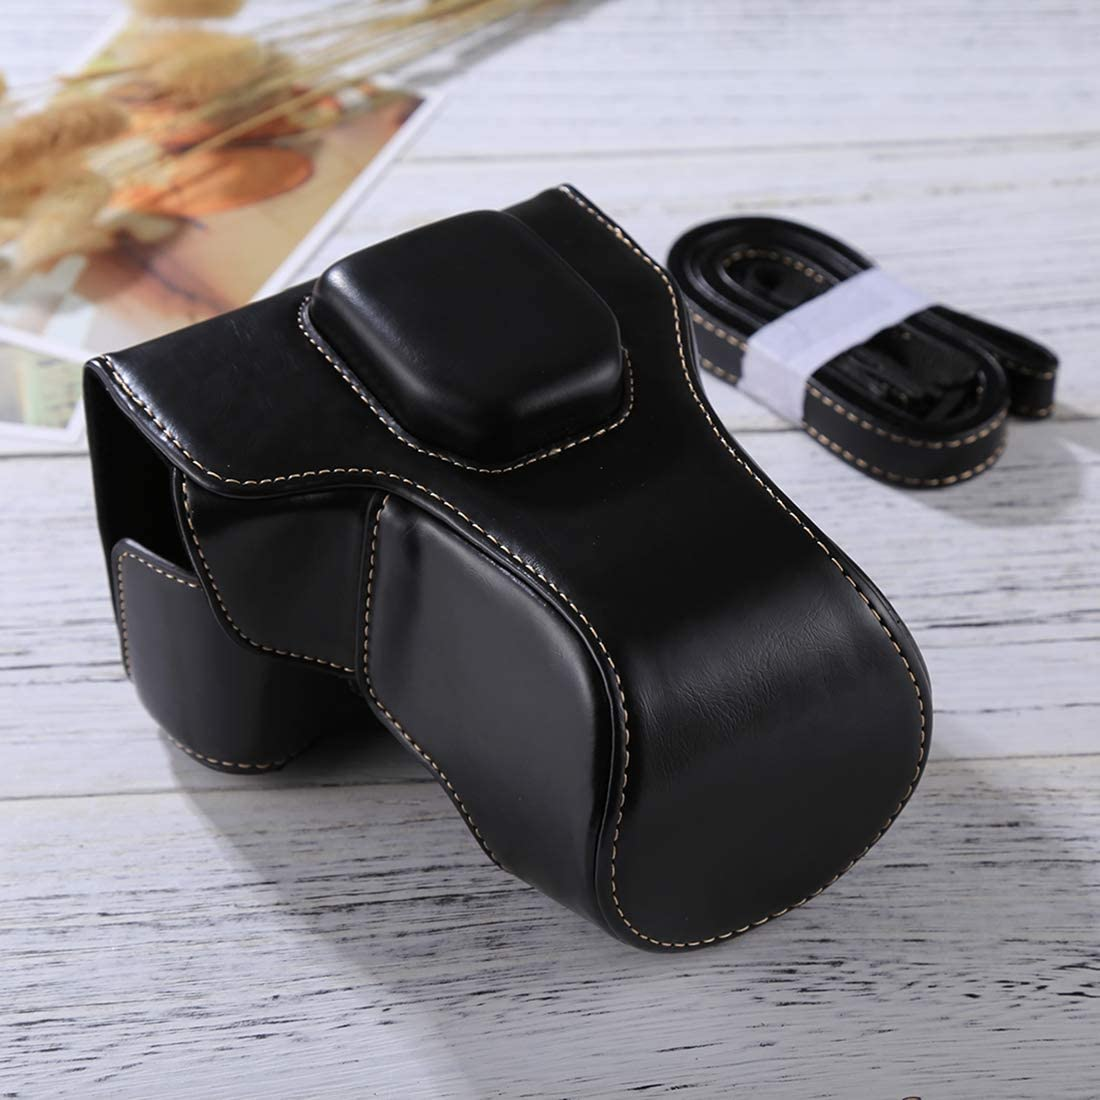 16-50mm // 18-55mm Lens XIAOMIN Full Body Camera PU Leather Case Bag with Strap for FUJIFILM XT10 // XT20 Color : Black Premium Material